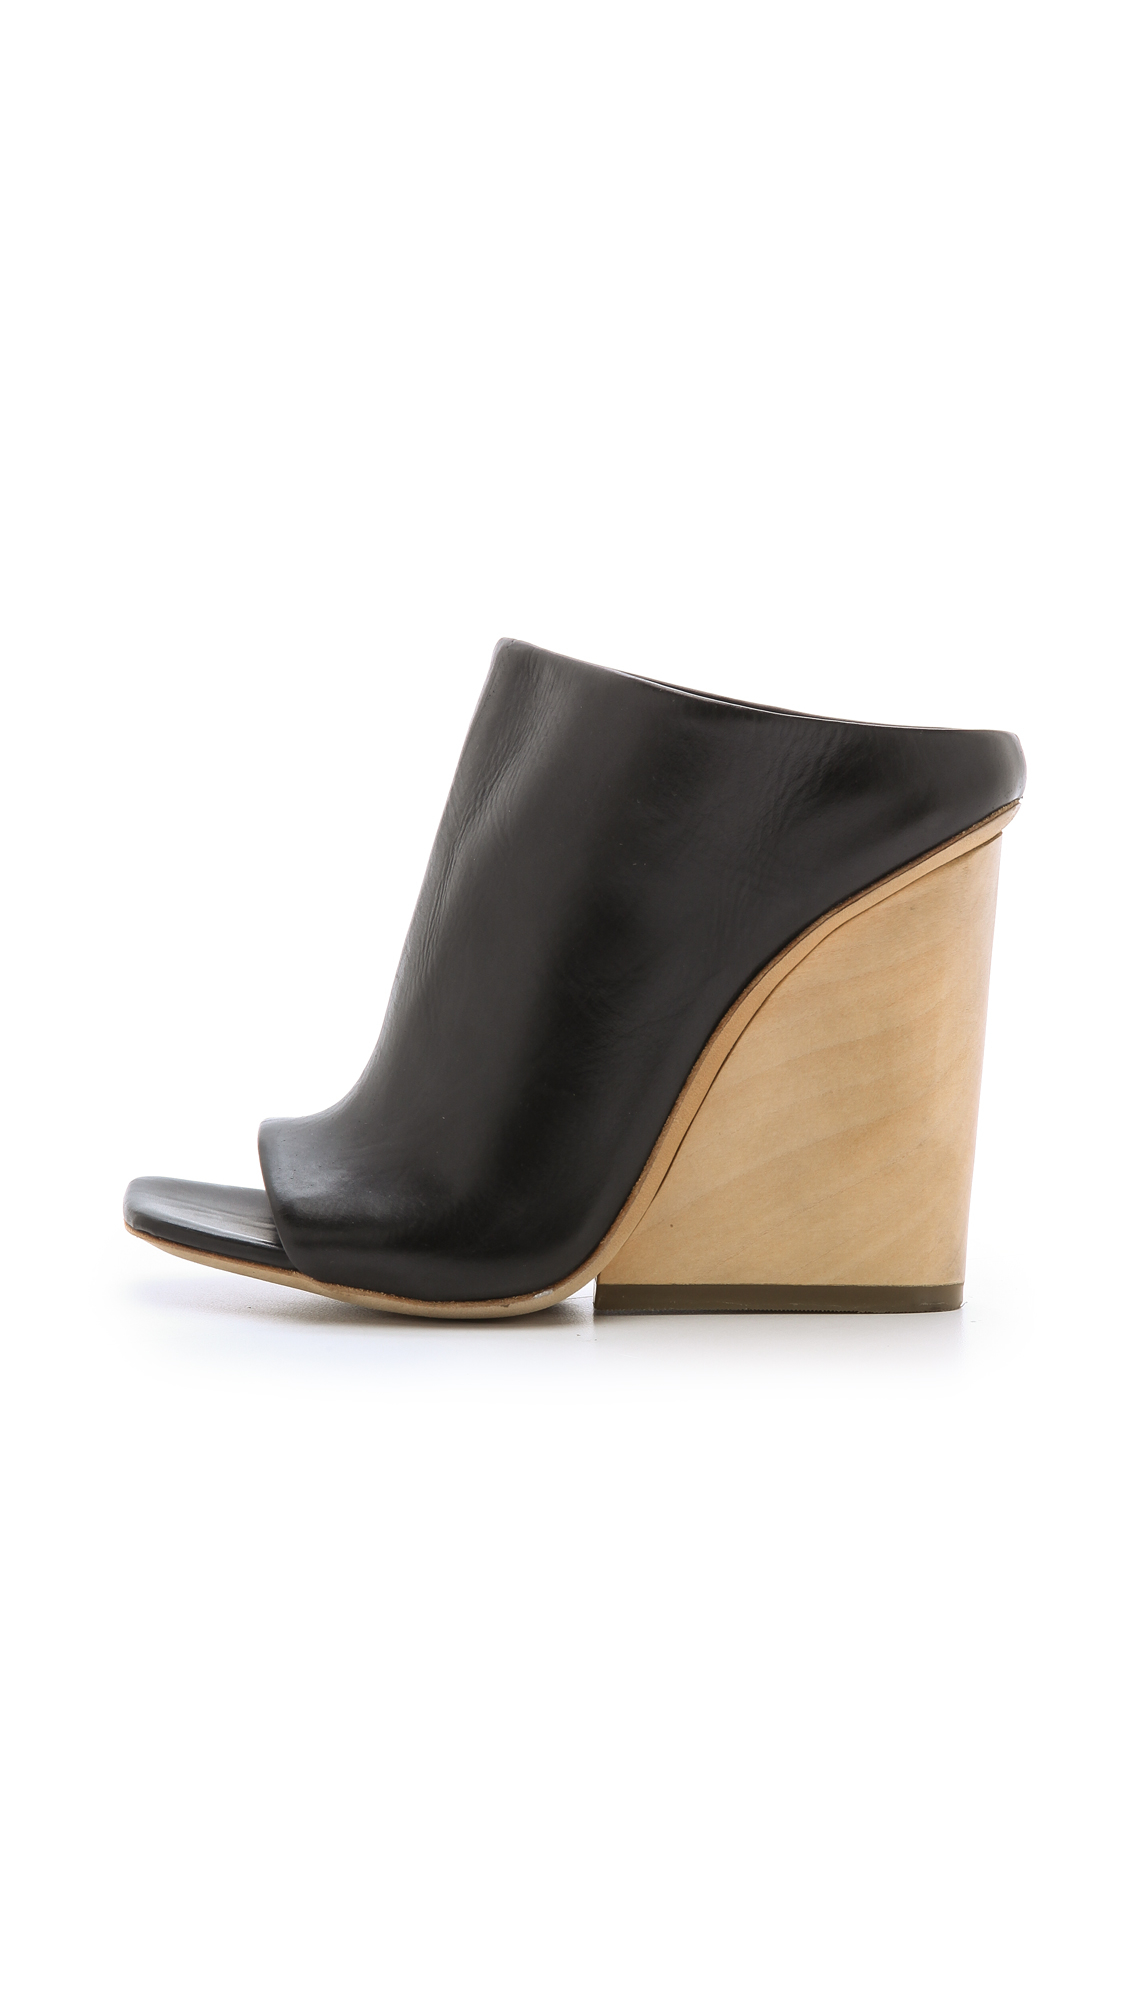 Sale Cheapest With Credit Card FOOTWEAR - Mules Vic Mati Exclusive Cheap Online Top Quality Free Shipping Collections SLkWtaBi